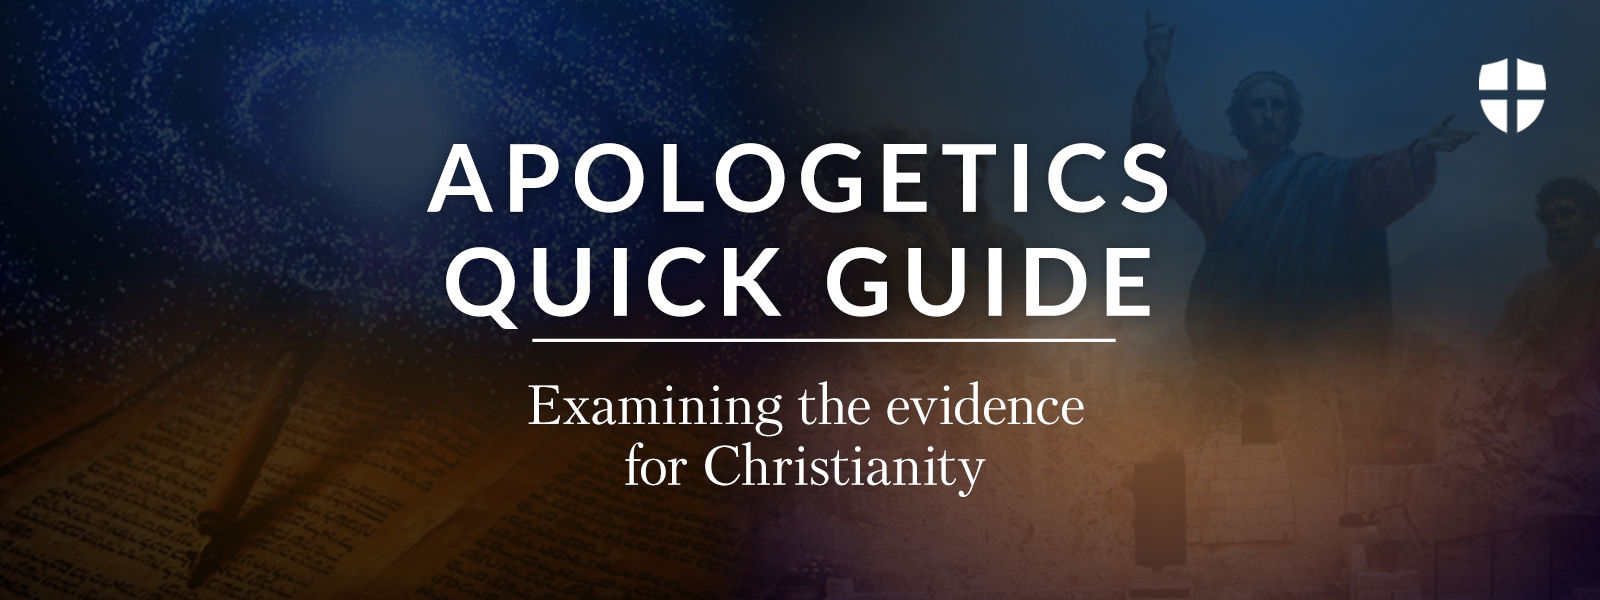 Apologetics Quick Guide: Examining the Evidence for Christianity